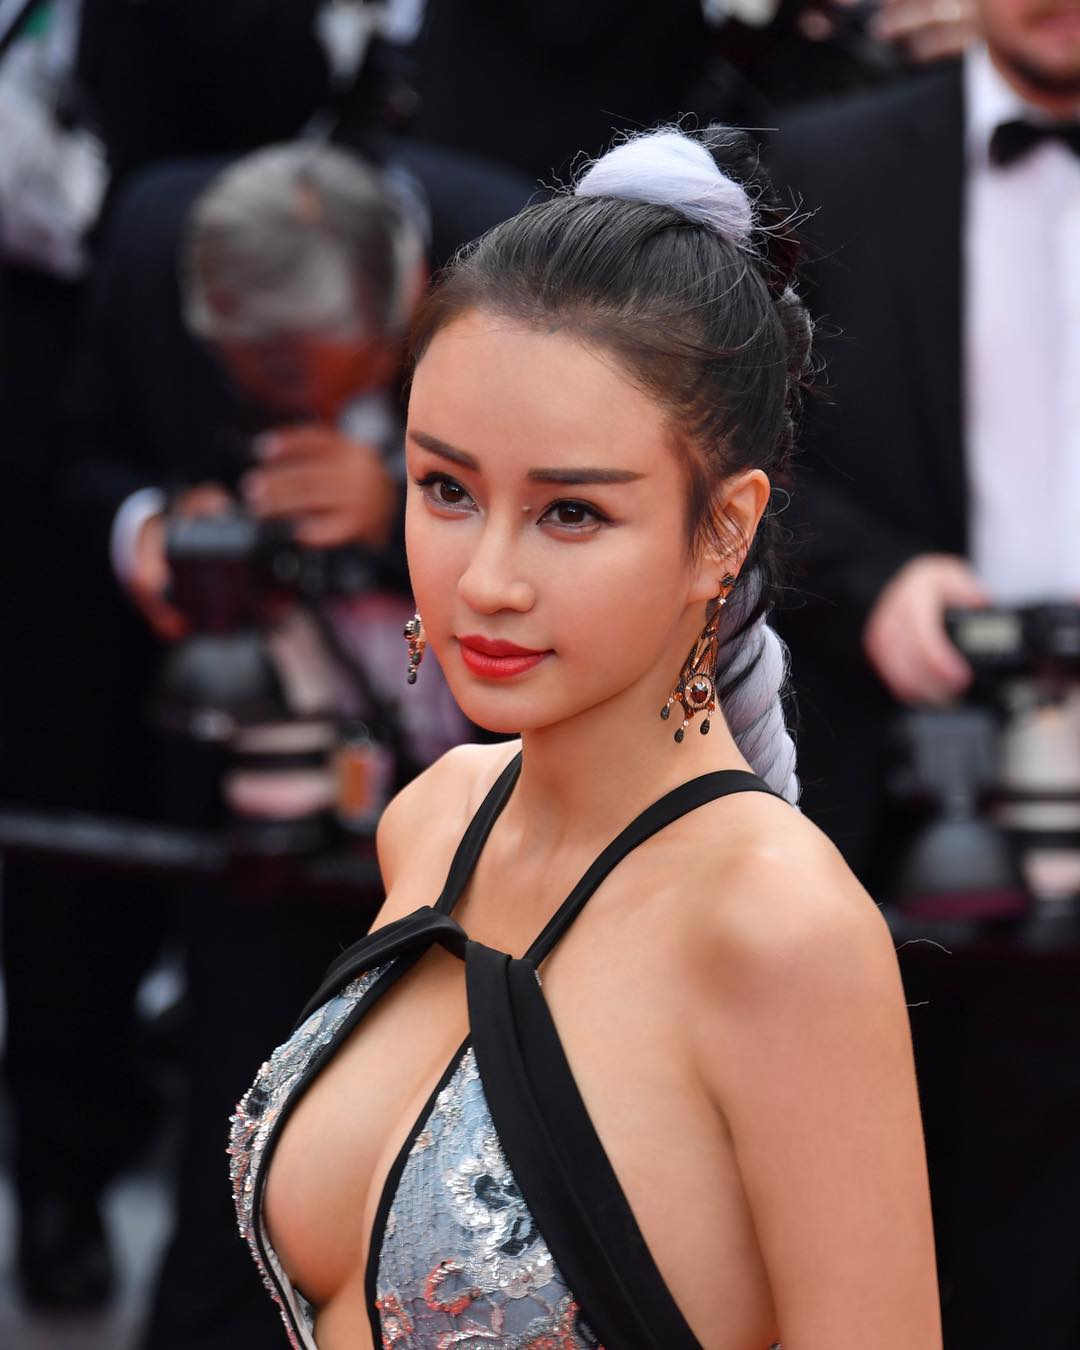 tuyet chieu co than hinh nay no cua co giao dan toc o cannes 2019 hinh anh 1